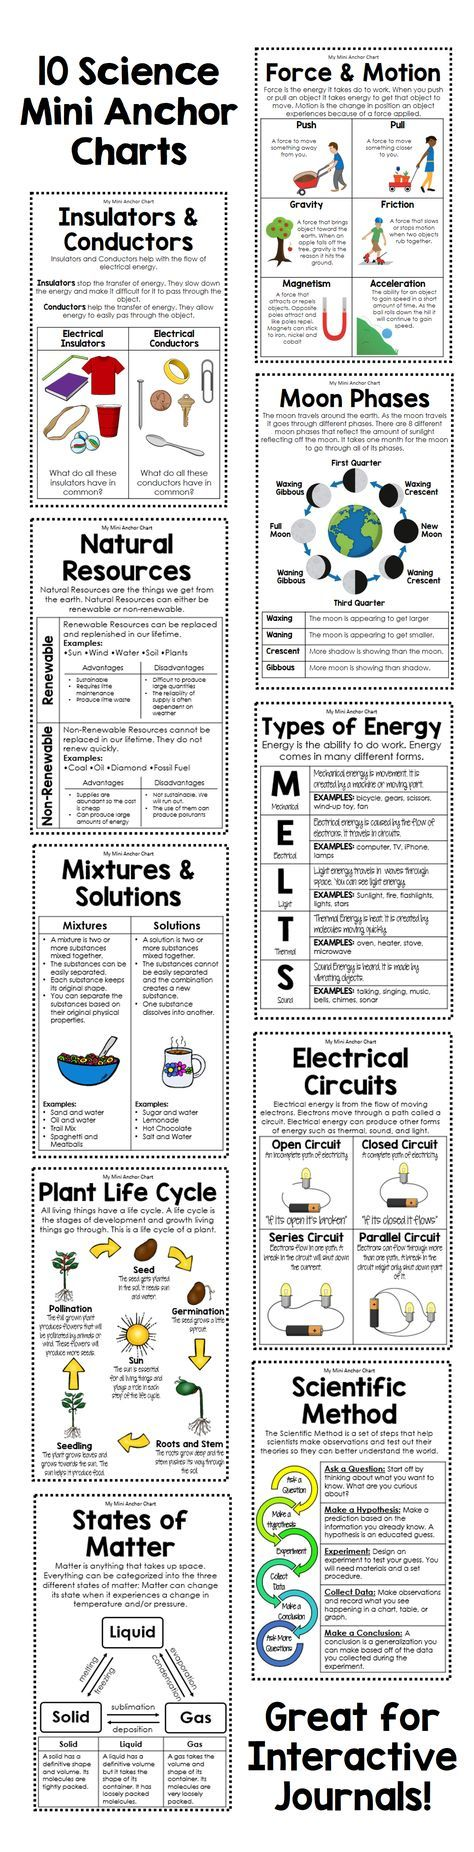 Science Posters 4th Grade Pinterest Scientific Method Worksheets Electric Circuit Get These 10 Anchor Charts To Help Your Students Remember Important Concepts Topics Included Force And Motion Insulators Conductors